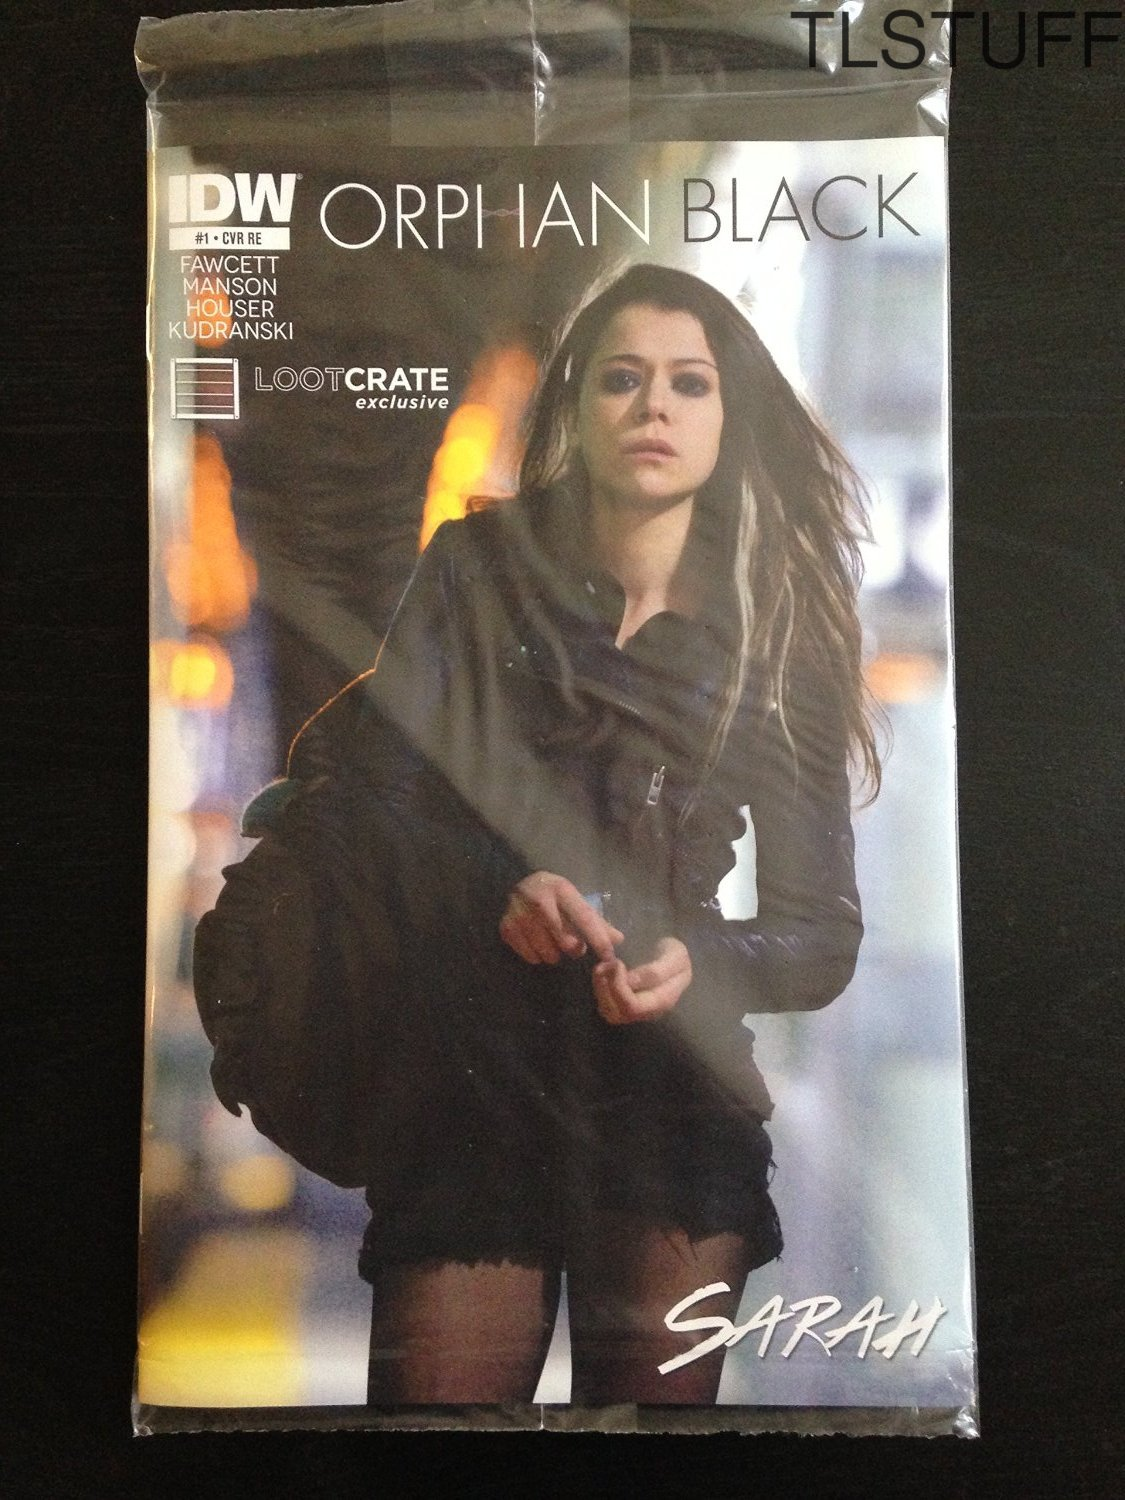 Orphan Black Comic #1 Exclusive Sarah Cover Loot C